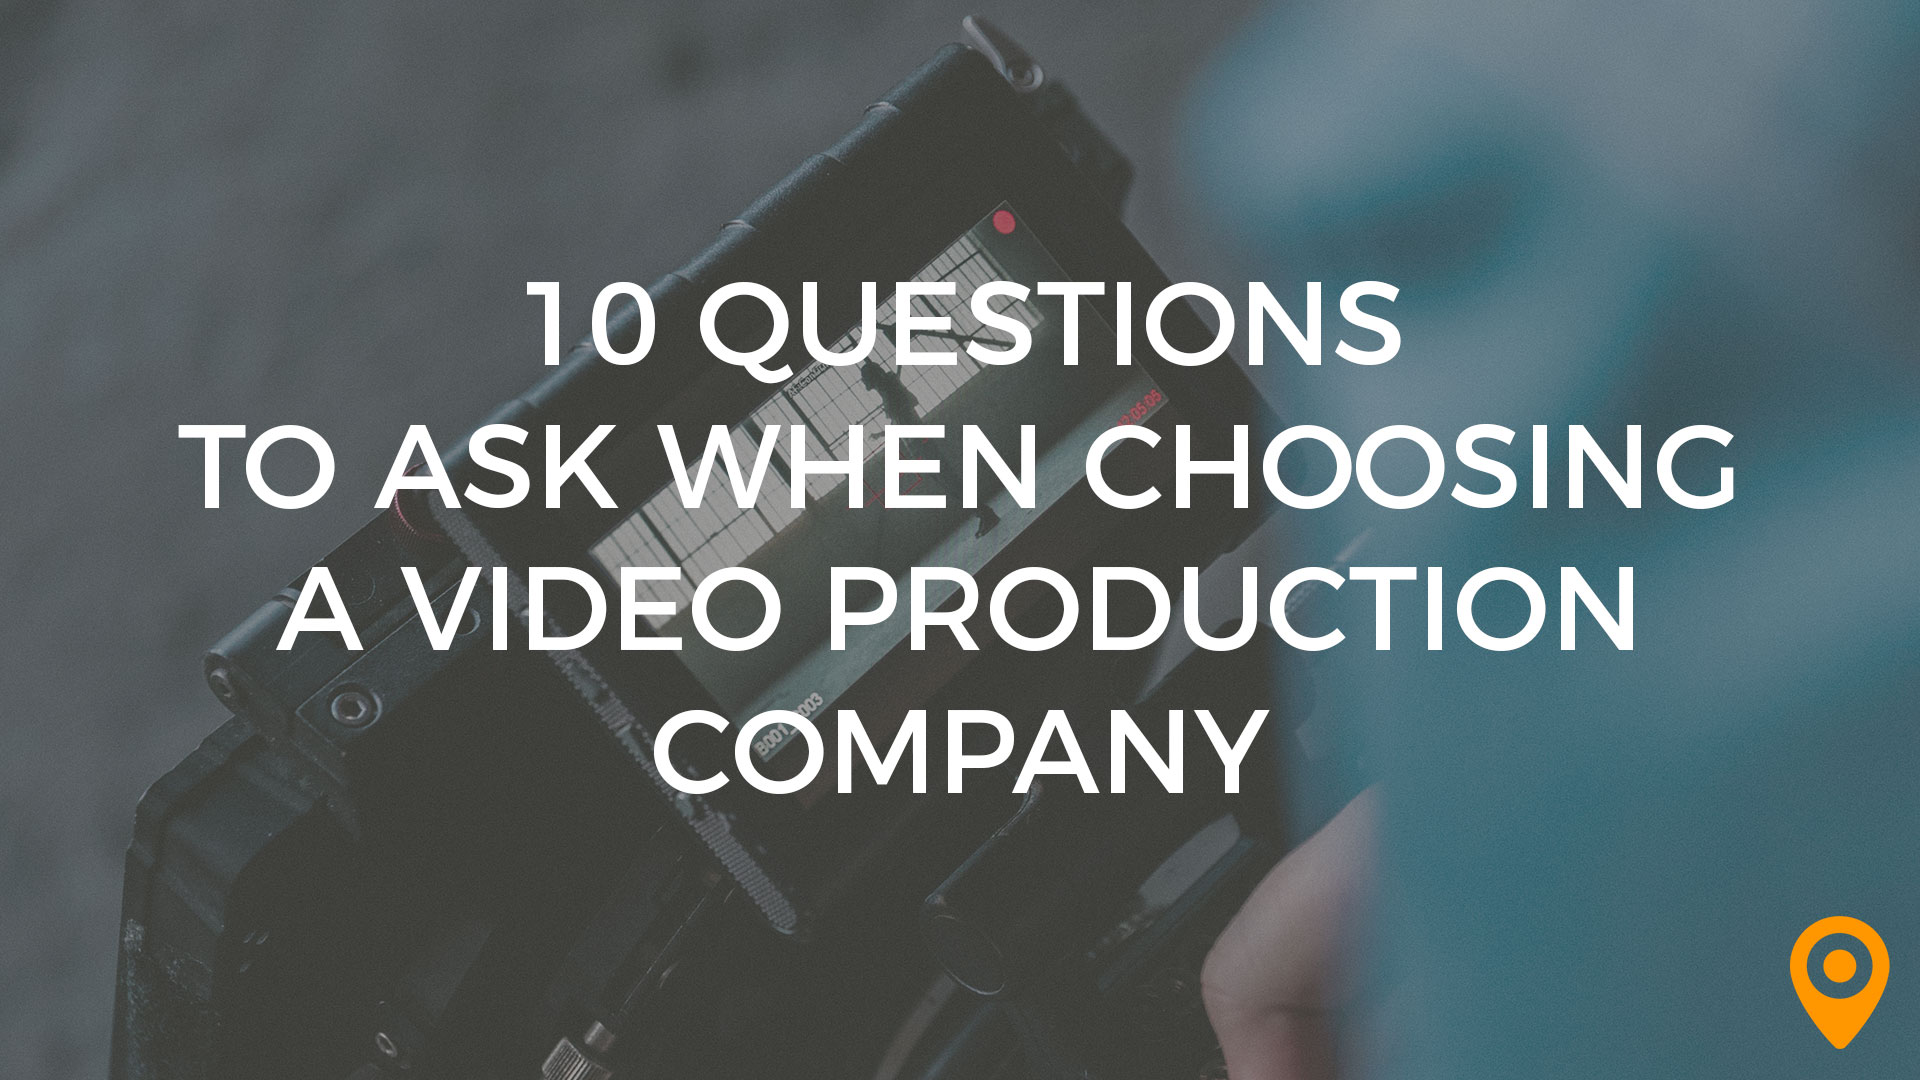 10 Questions to Ask a Video Production Company